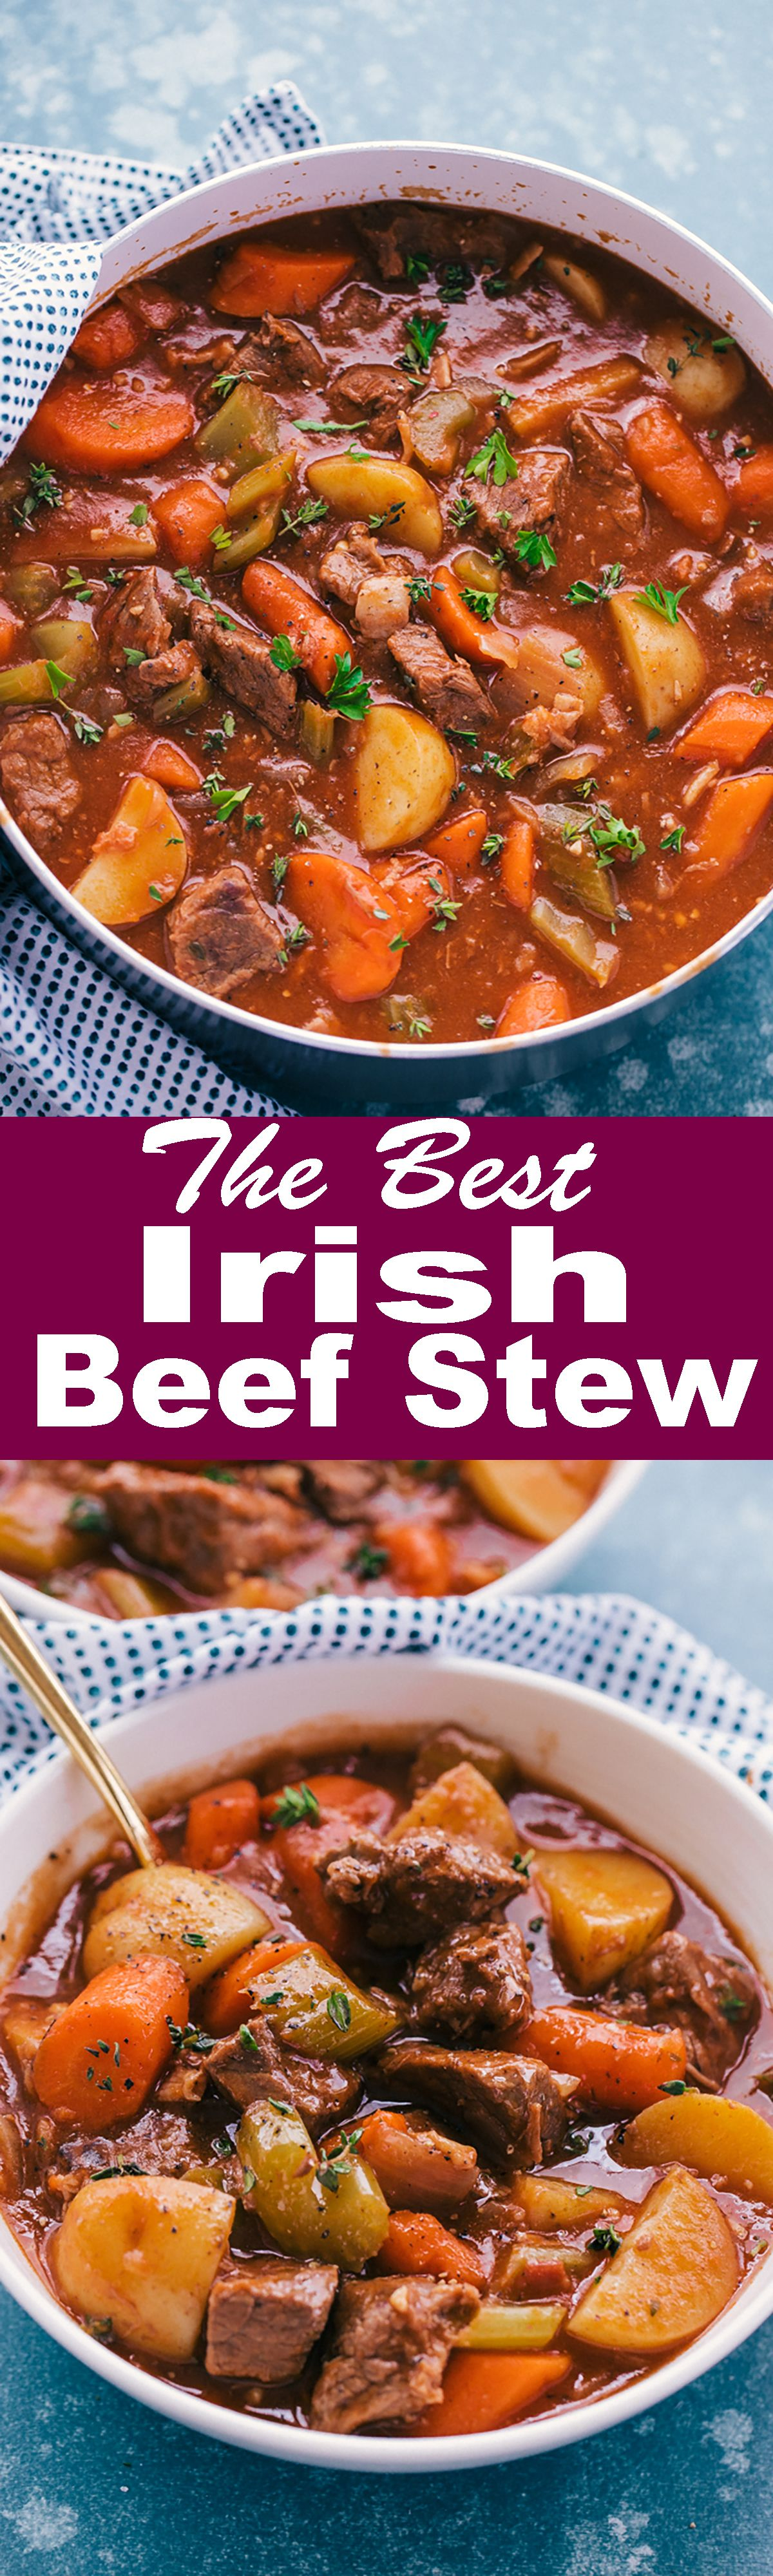 The Best Irish Beef Stew Comes With The Most Robust And Sensational Flavors Built Around Tender Chunks Of Boneless Beef Irish Beef Stew Stew Recipes Recipes